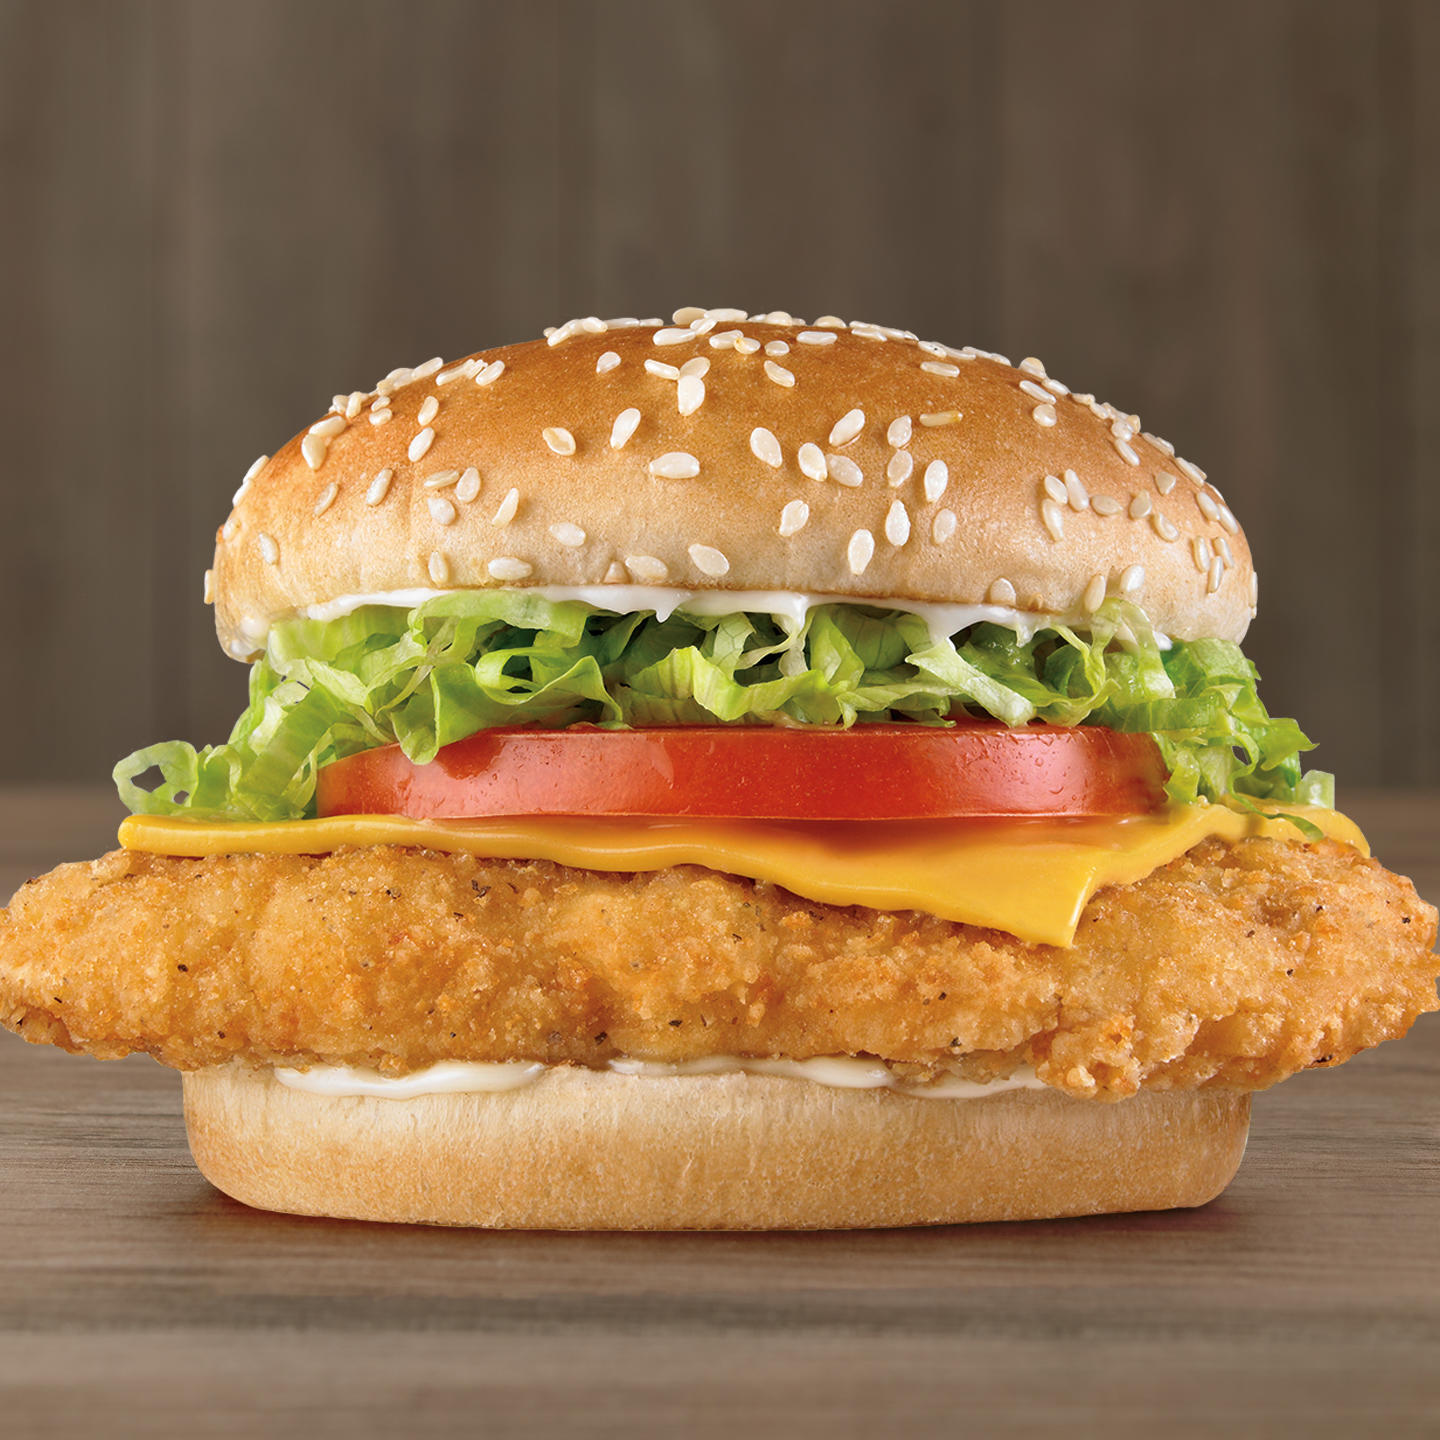 Open your eyes wide and set your sights on a quarter pound* of crispy, juicy, 100% white meat chicken topped with fresh iceberg lettuce and creamy mayo, American cheese, a slice of red-ripe tomato, al